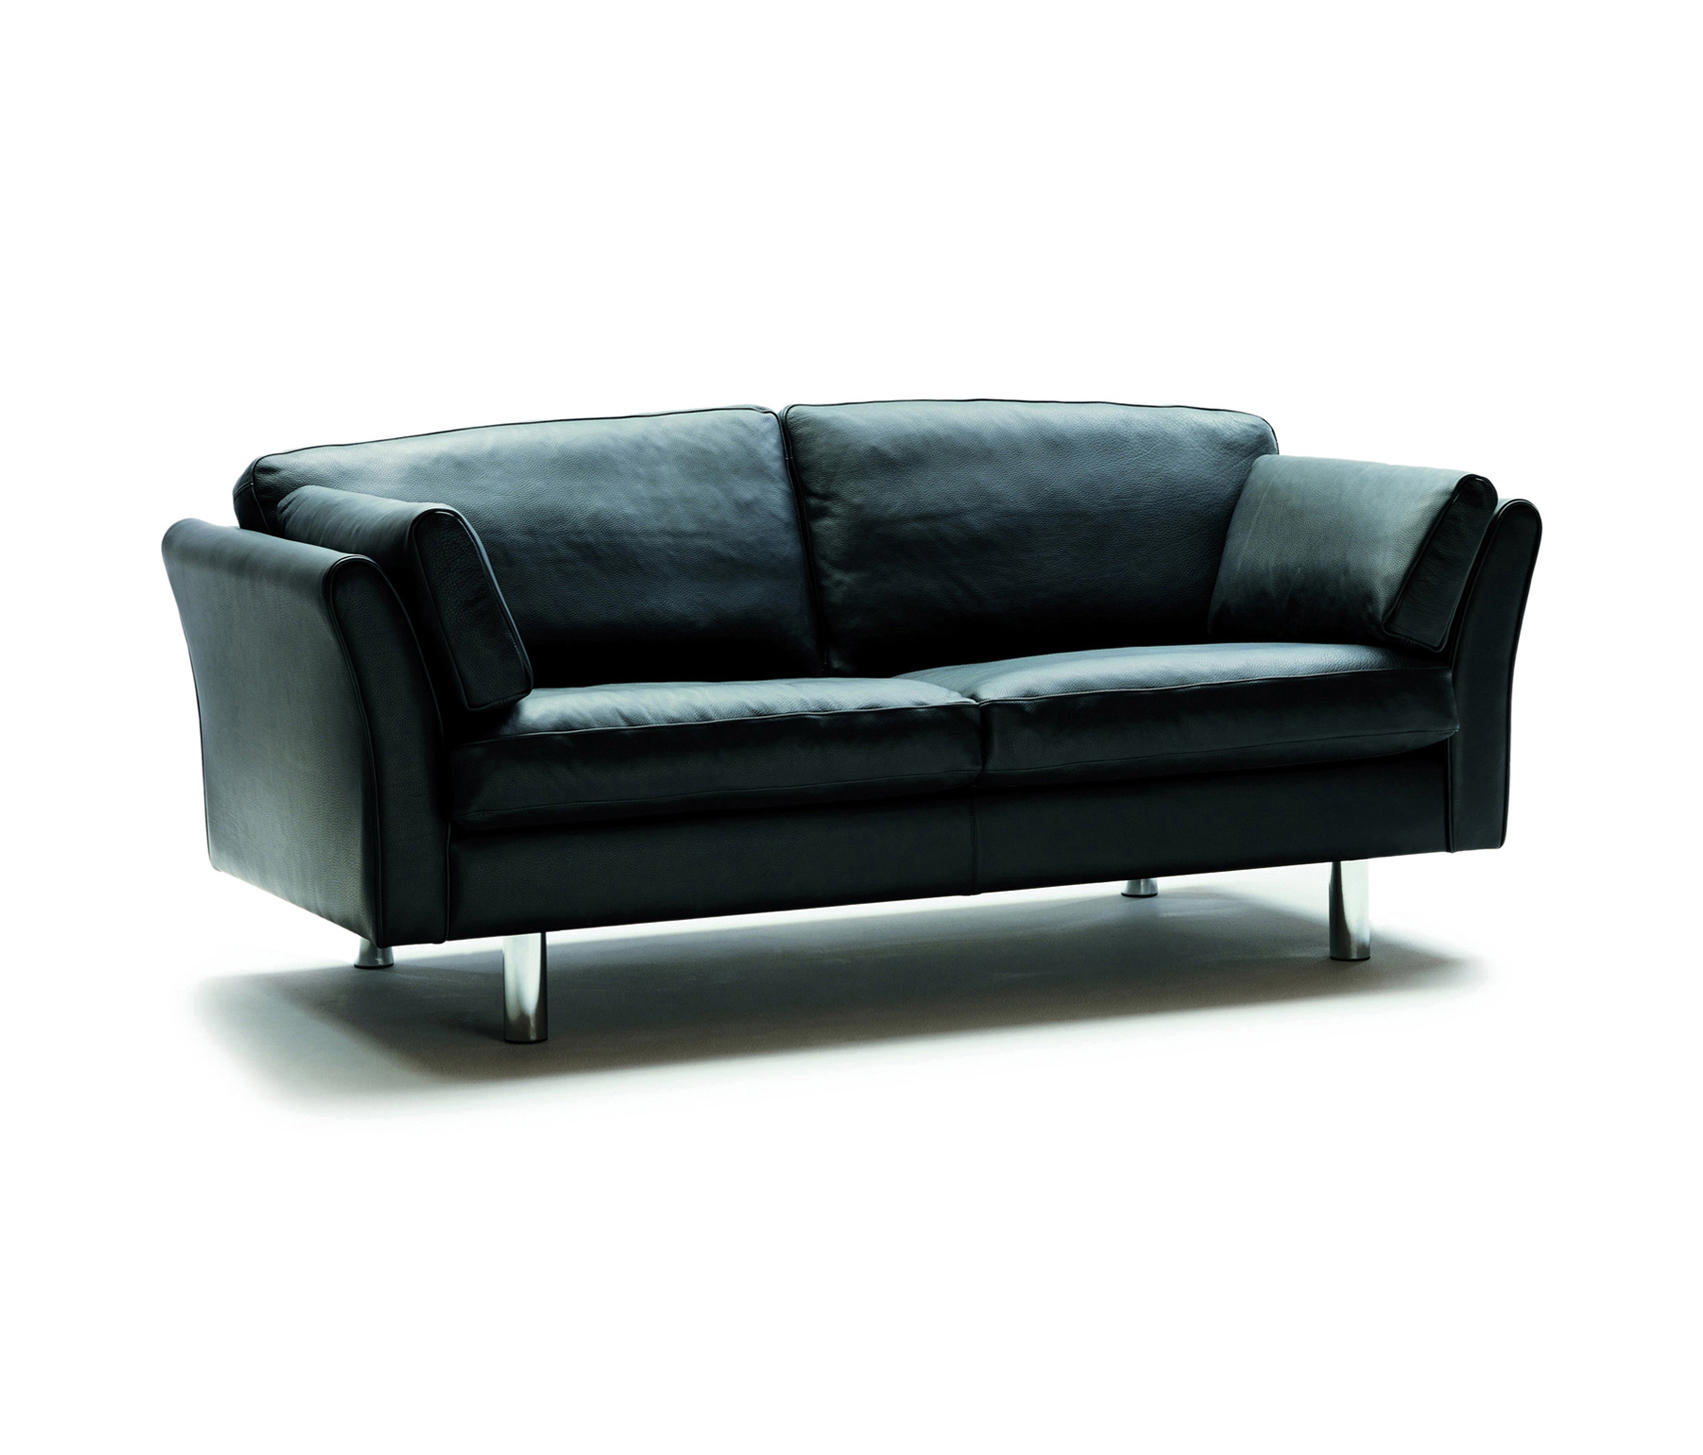 Outstanding Hjm Lotus Sofa Sofas From Stouby Architonic Andrewgaddart Wooden Chair Designs For Living Room Andrewgaddartcom